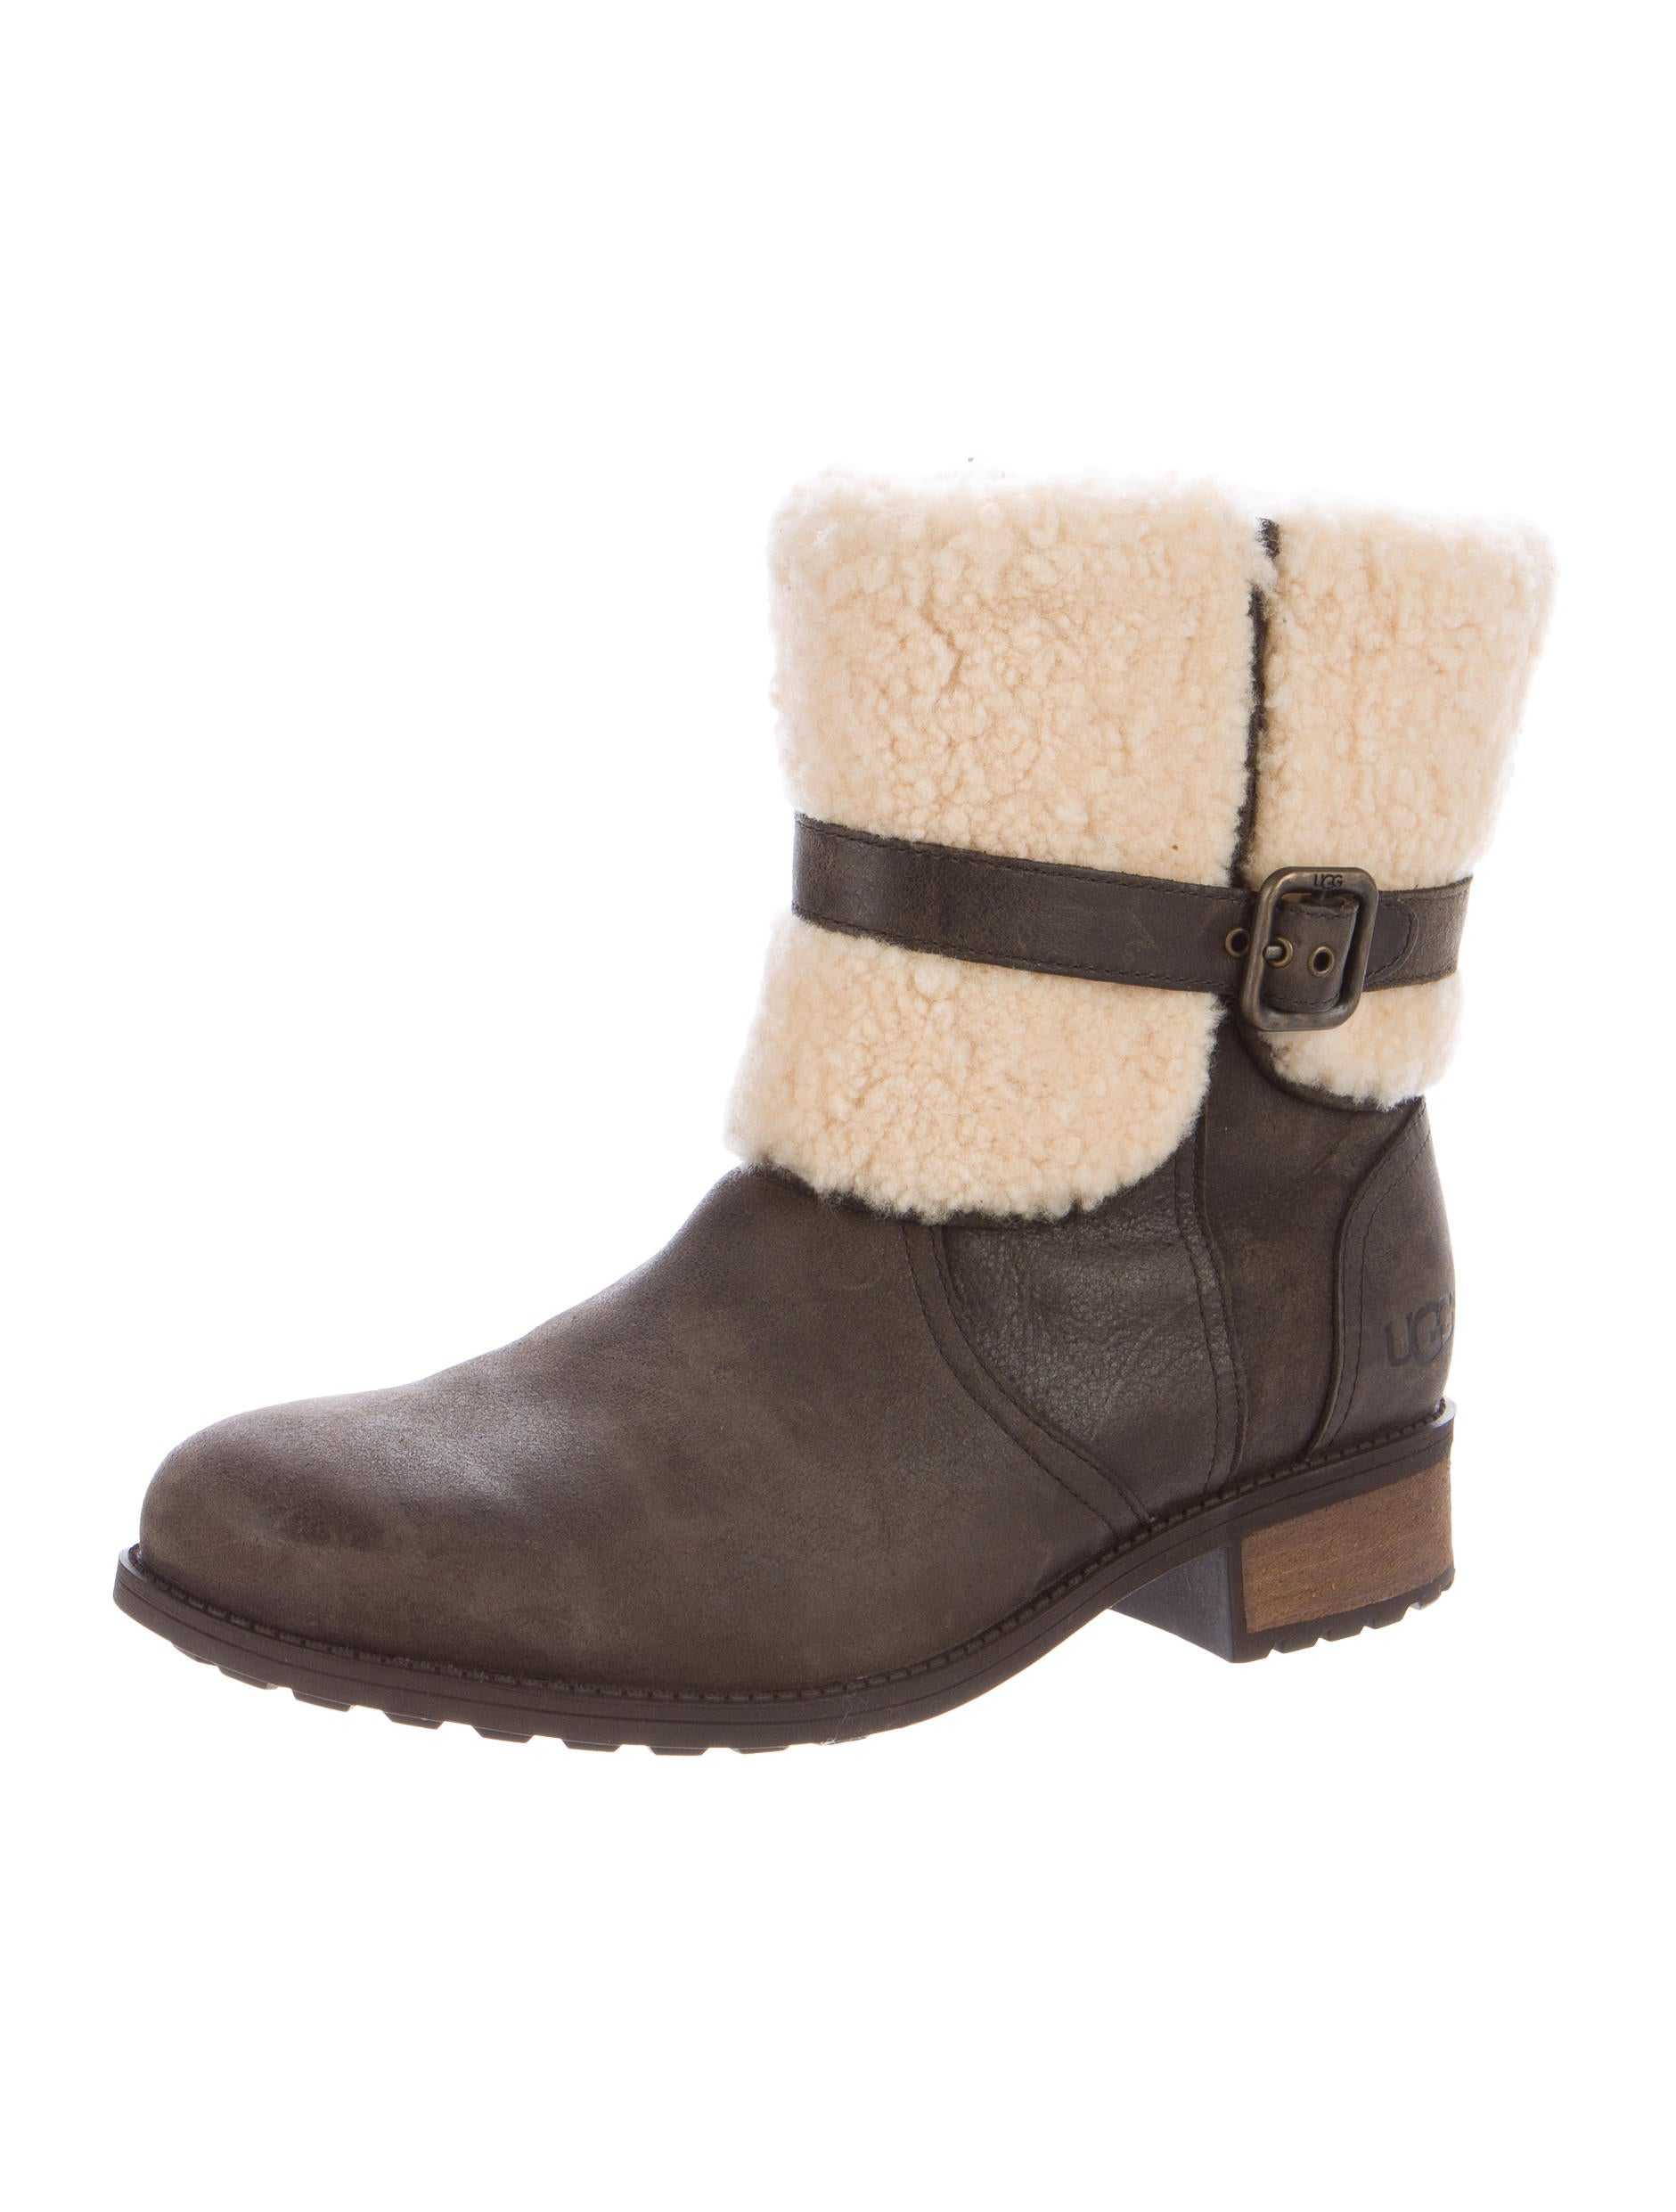 ugg australia shearling trimmed suede ankle boots shoes